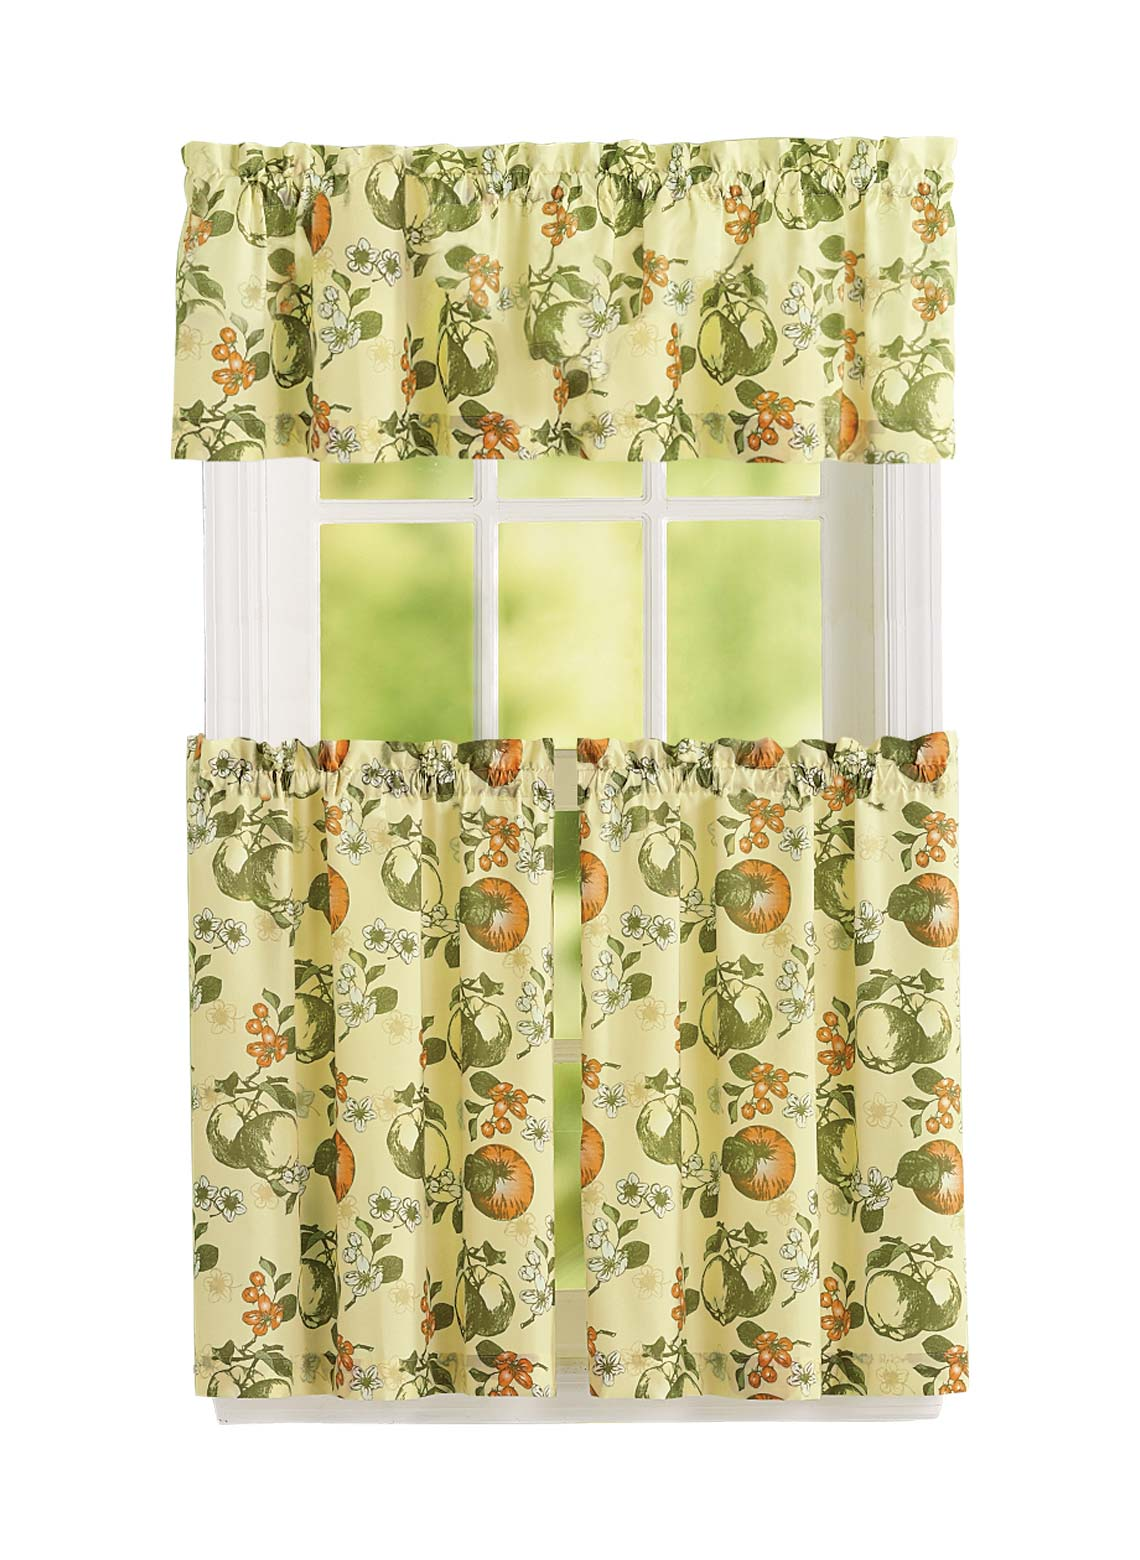 Kitchen Curtain and Valance Set